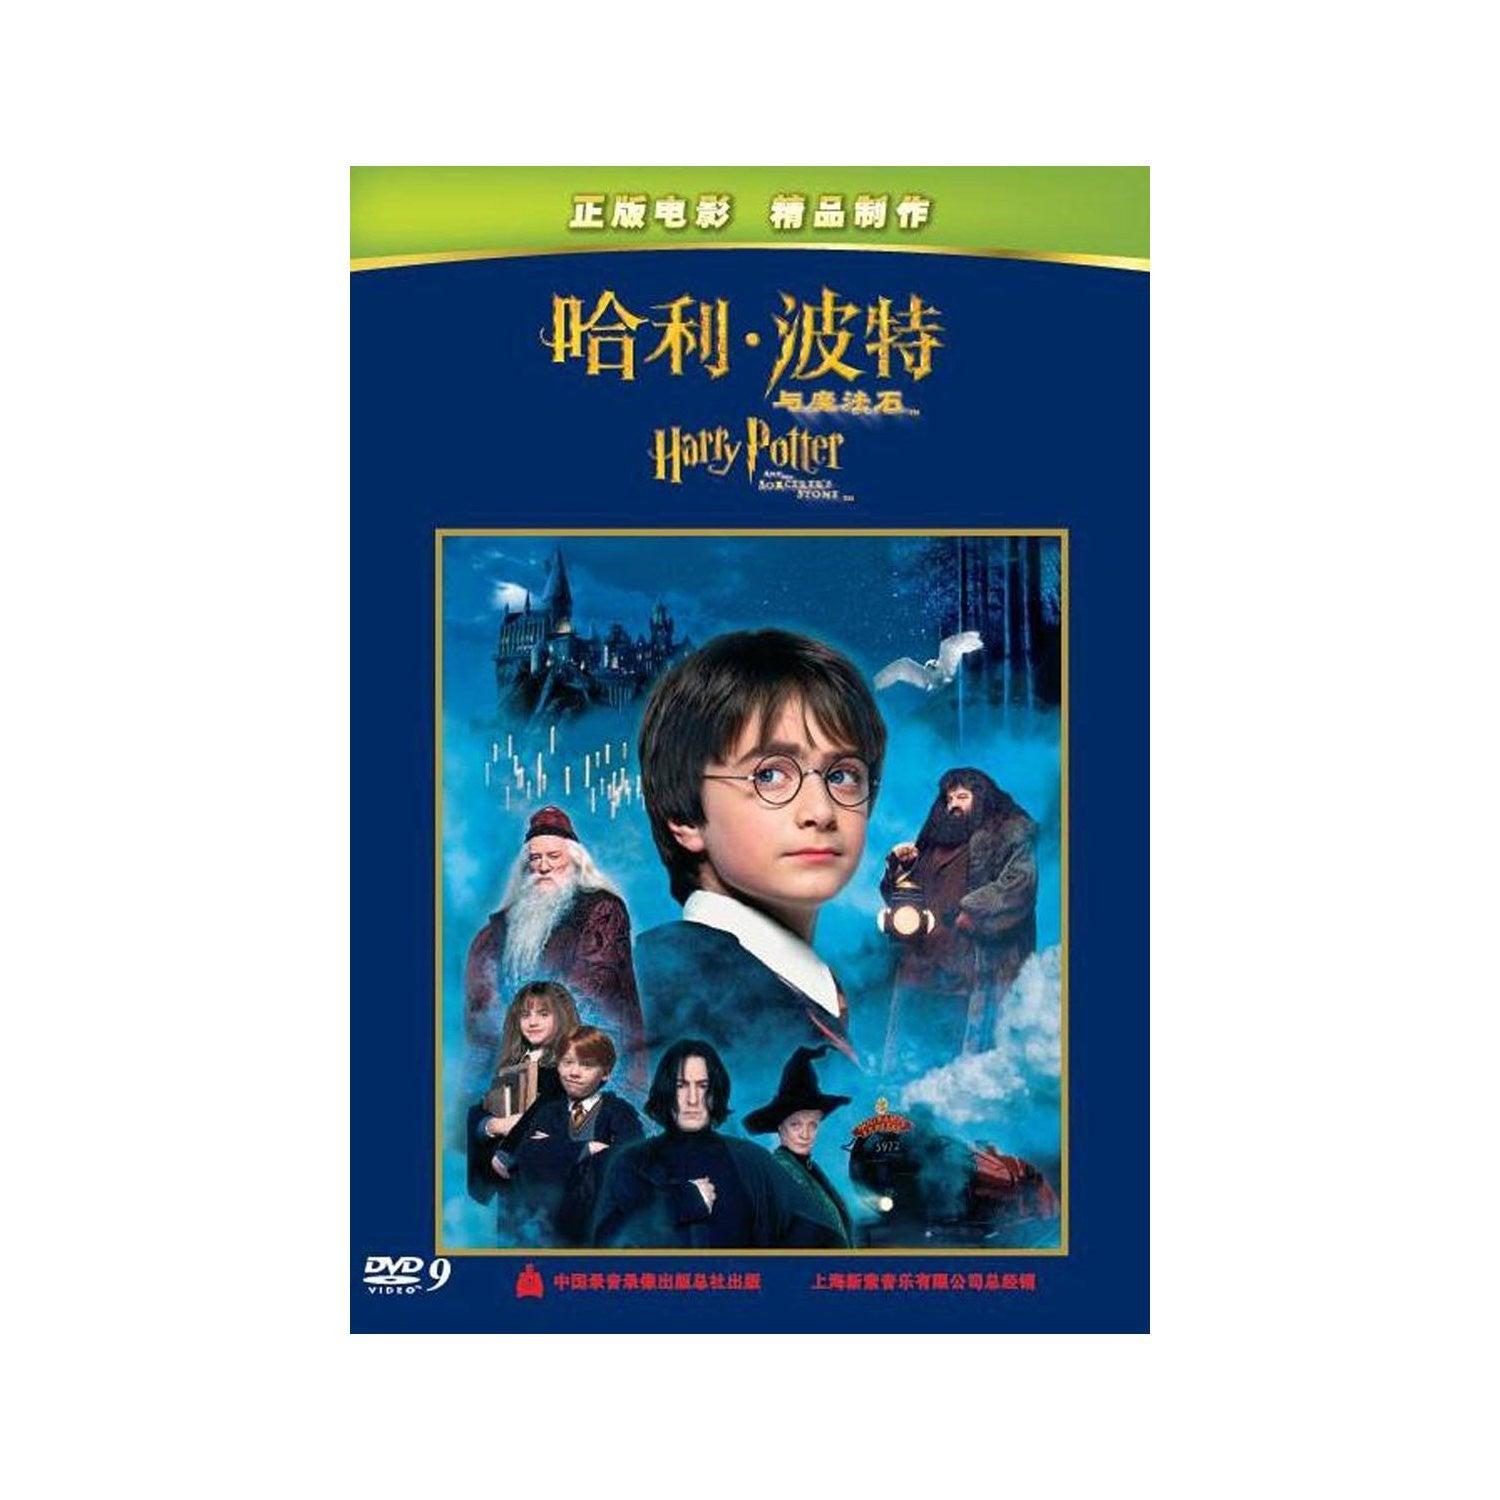 Harry Potter And The Sorcerer's Stone (Mandarin Chinese Edition)